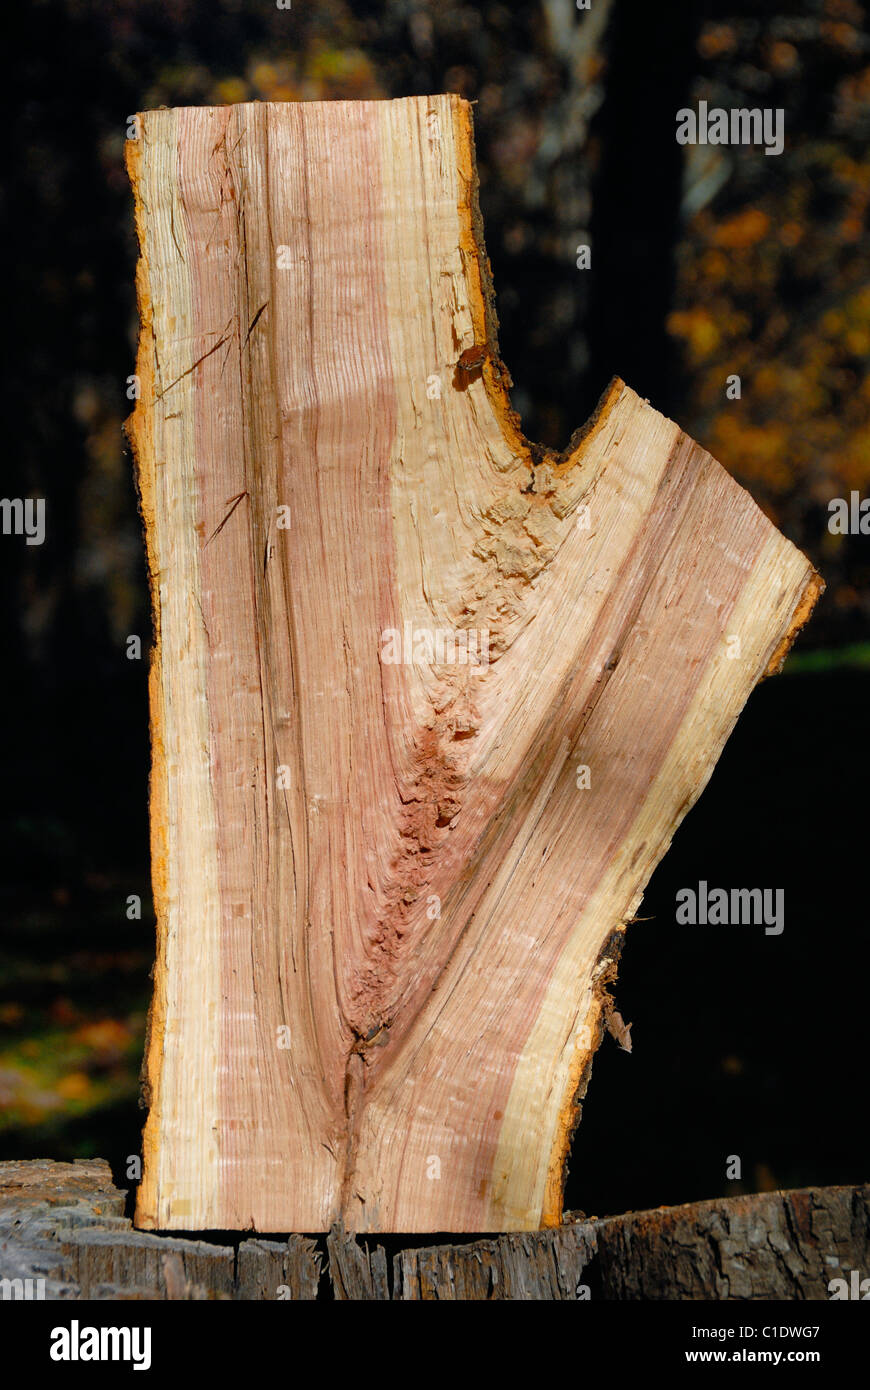 Cross section of a freshly cut Red Oak tree trunk - Stock Image